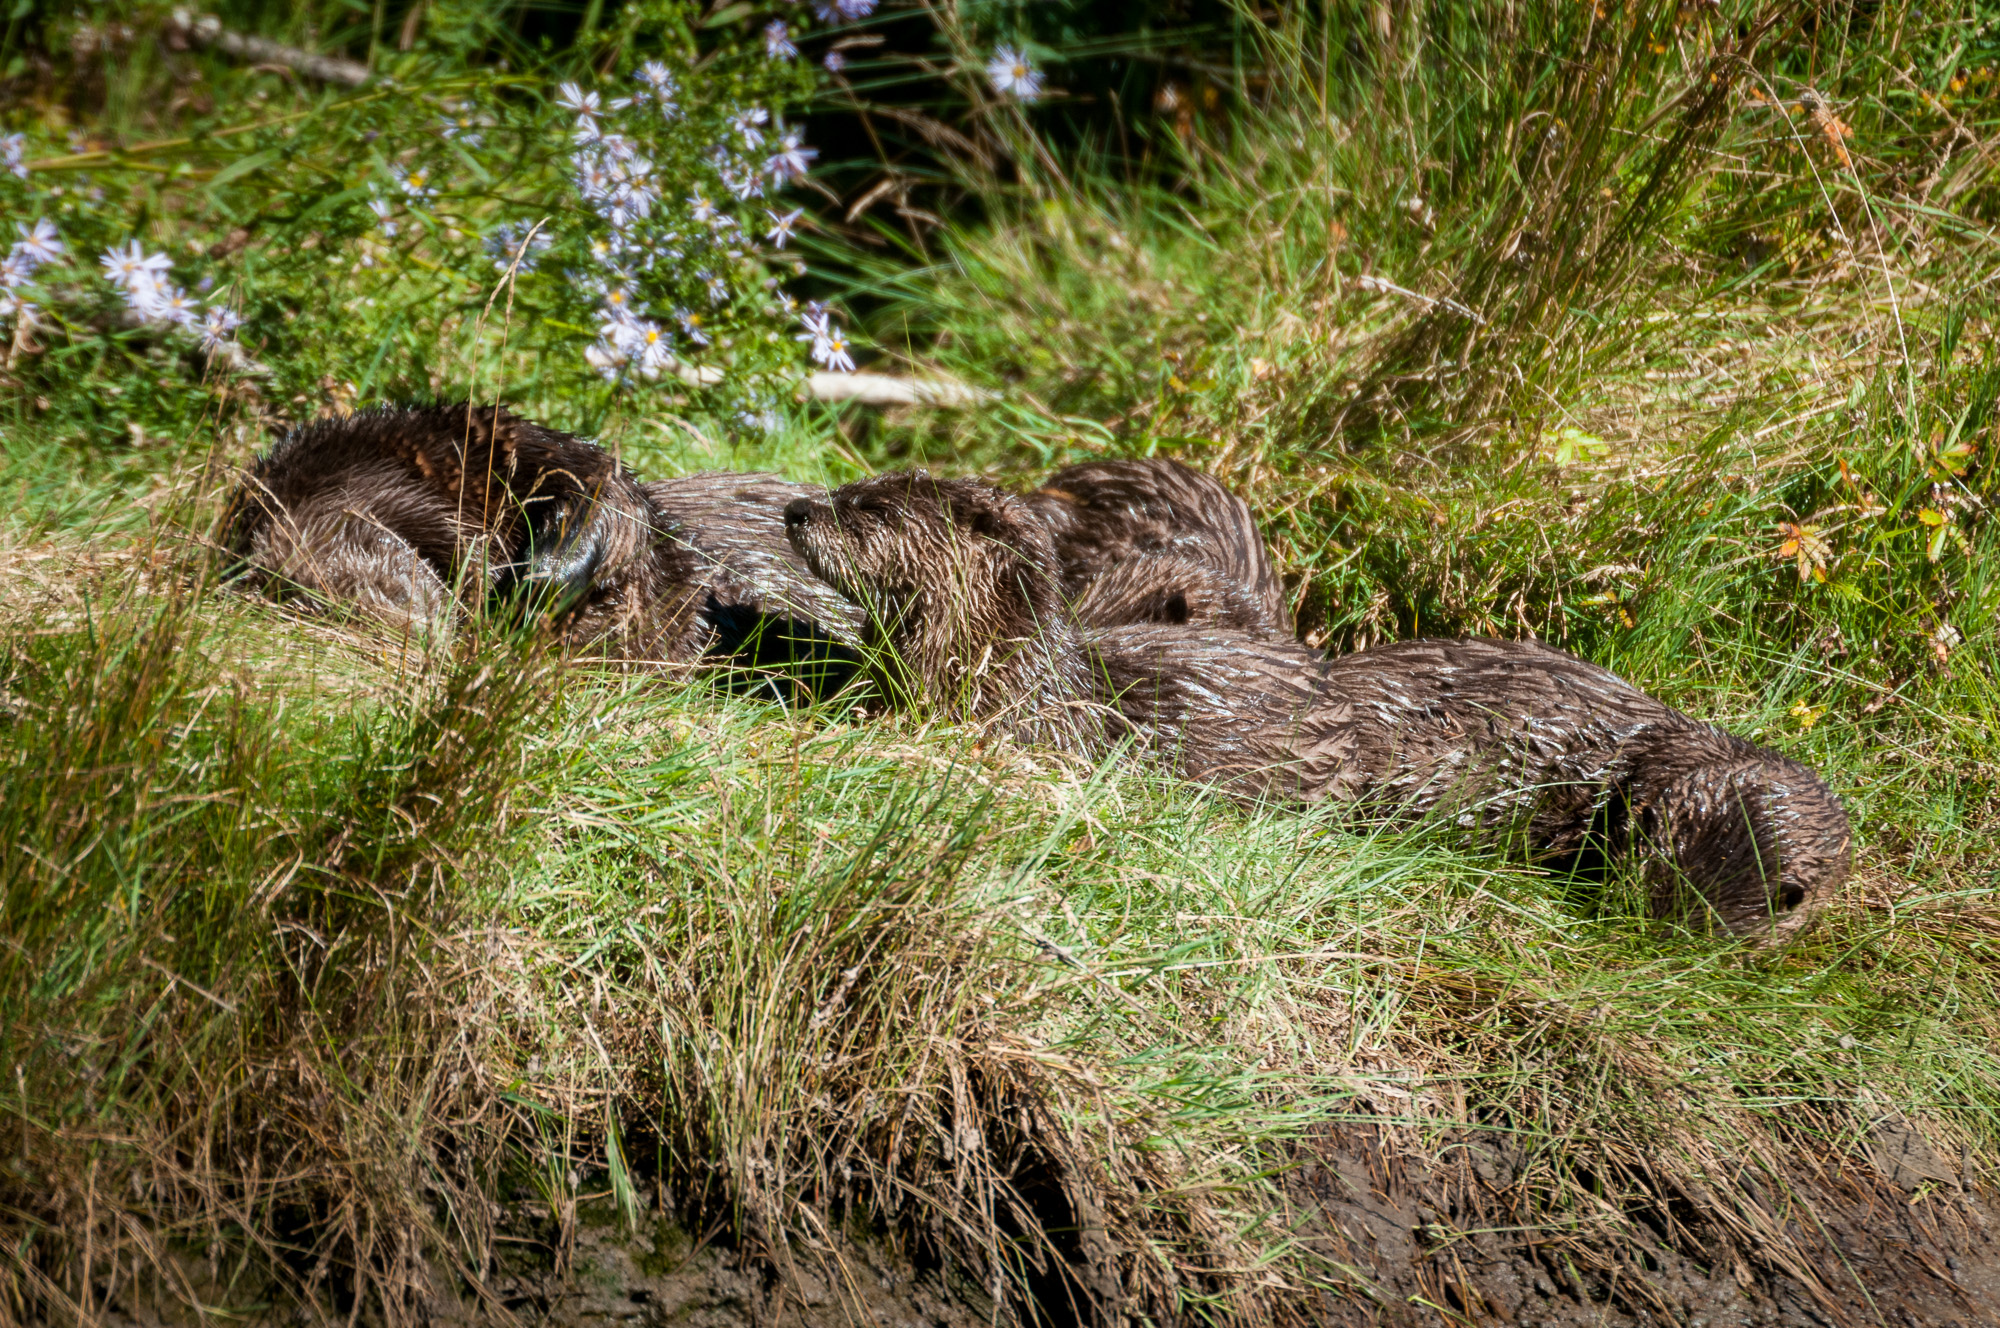 Four river otter relaxing on shore.